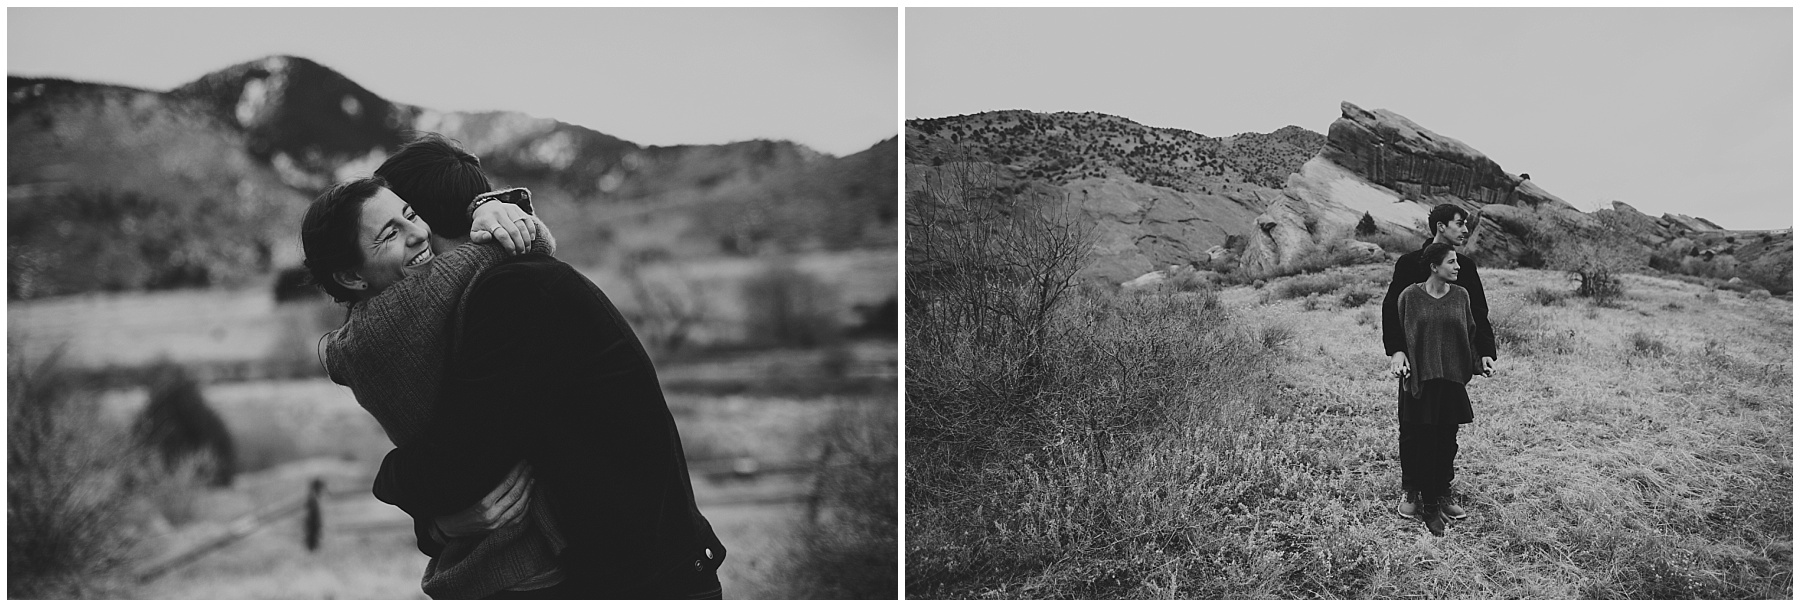 Katesalleyphotography-64_engagement shoot at Red Rocks.jpg